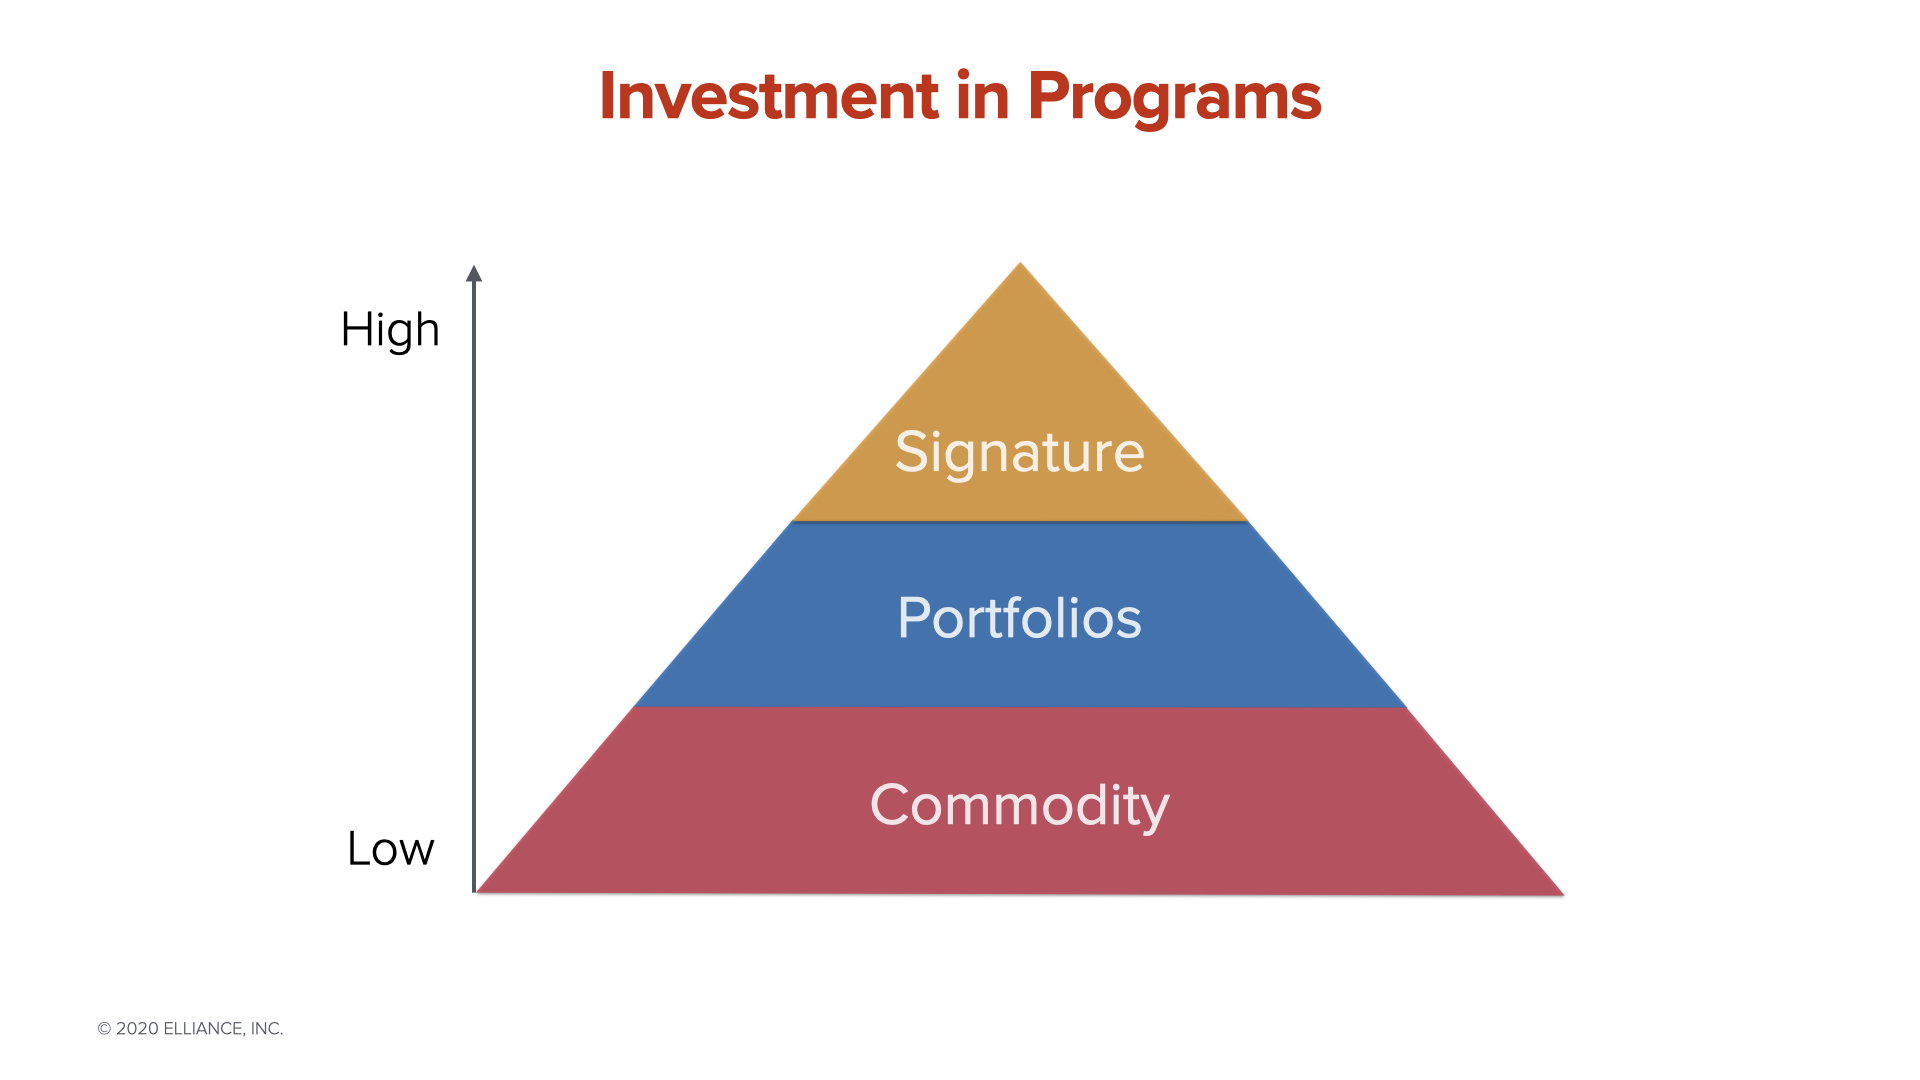 Investment in Programs